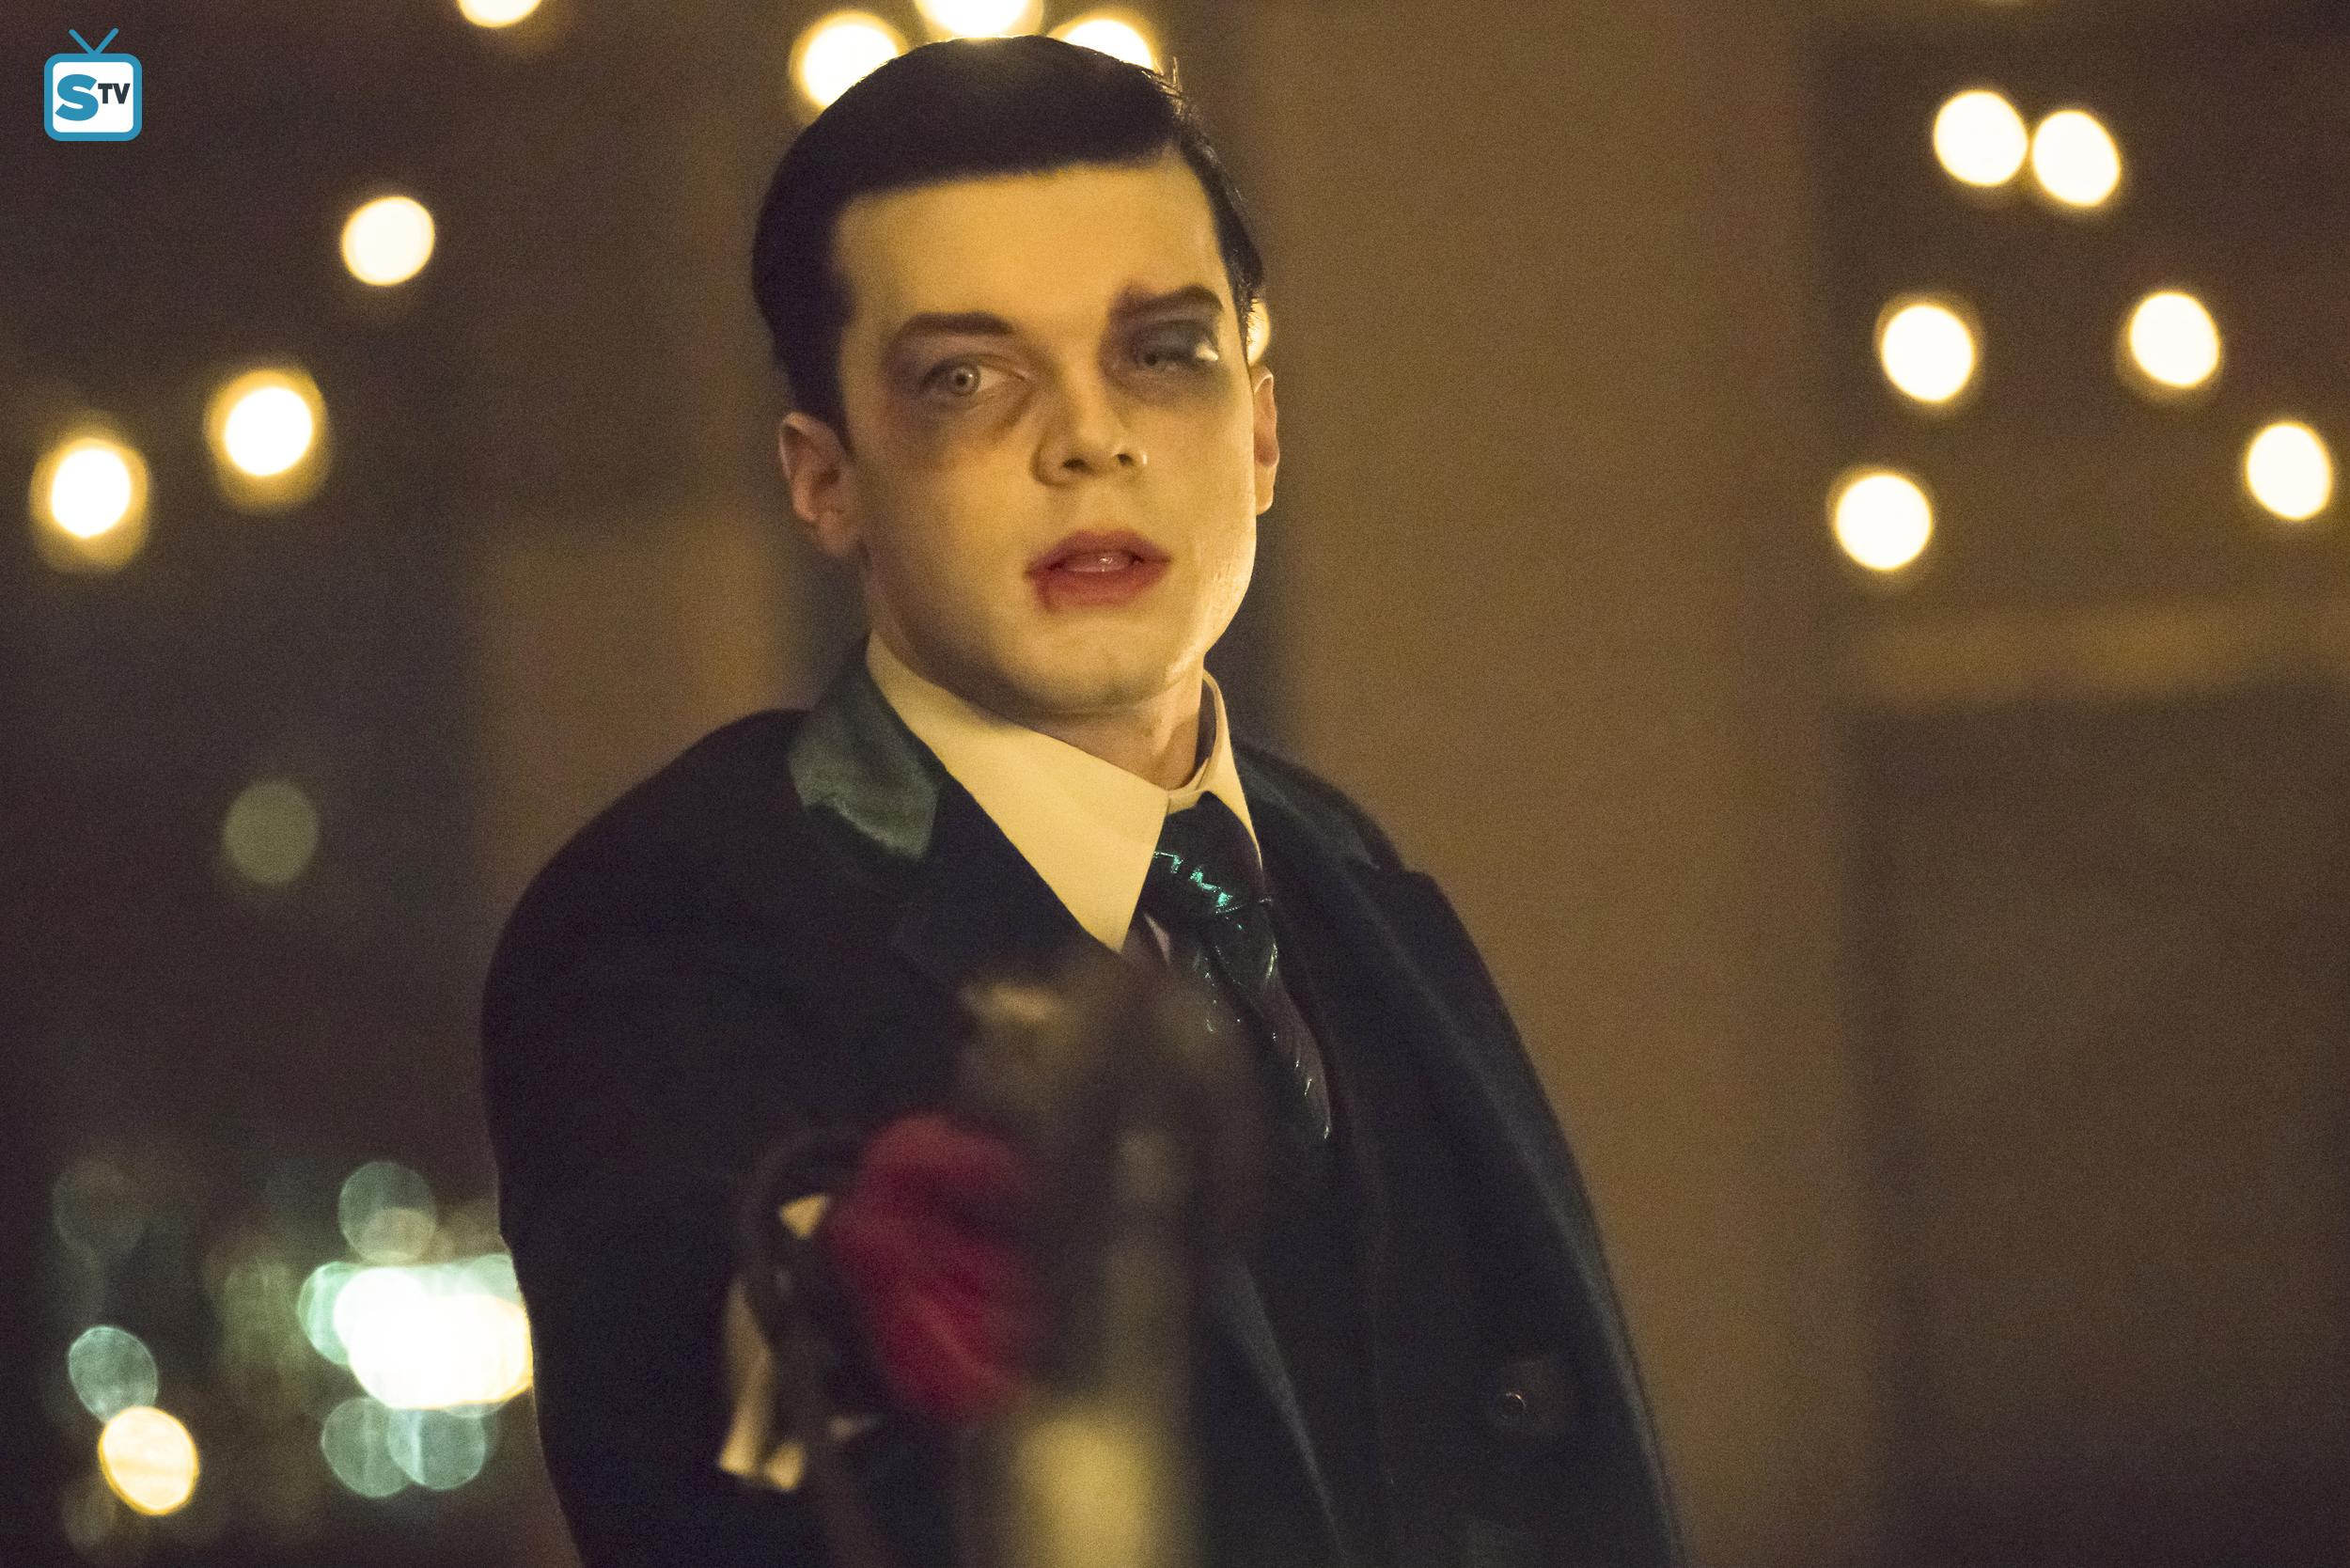 Gotham images 4x22   No Mans Land   Jeremiah HD wallpaper and 2500x1668